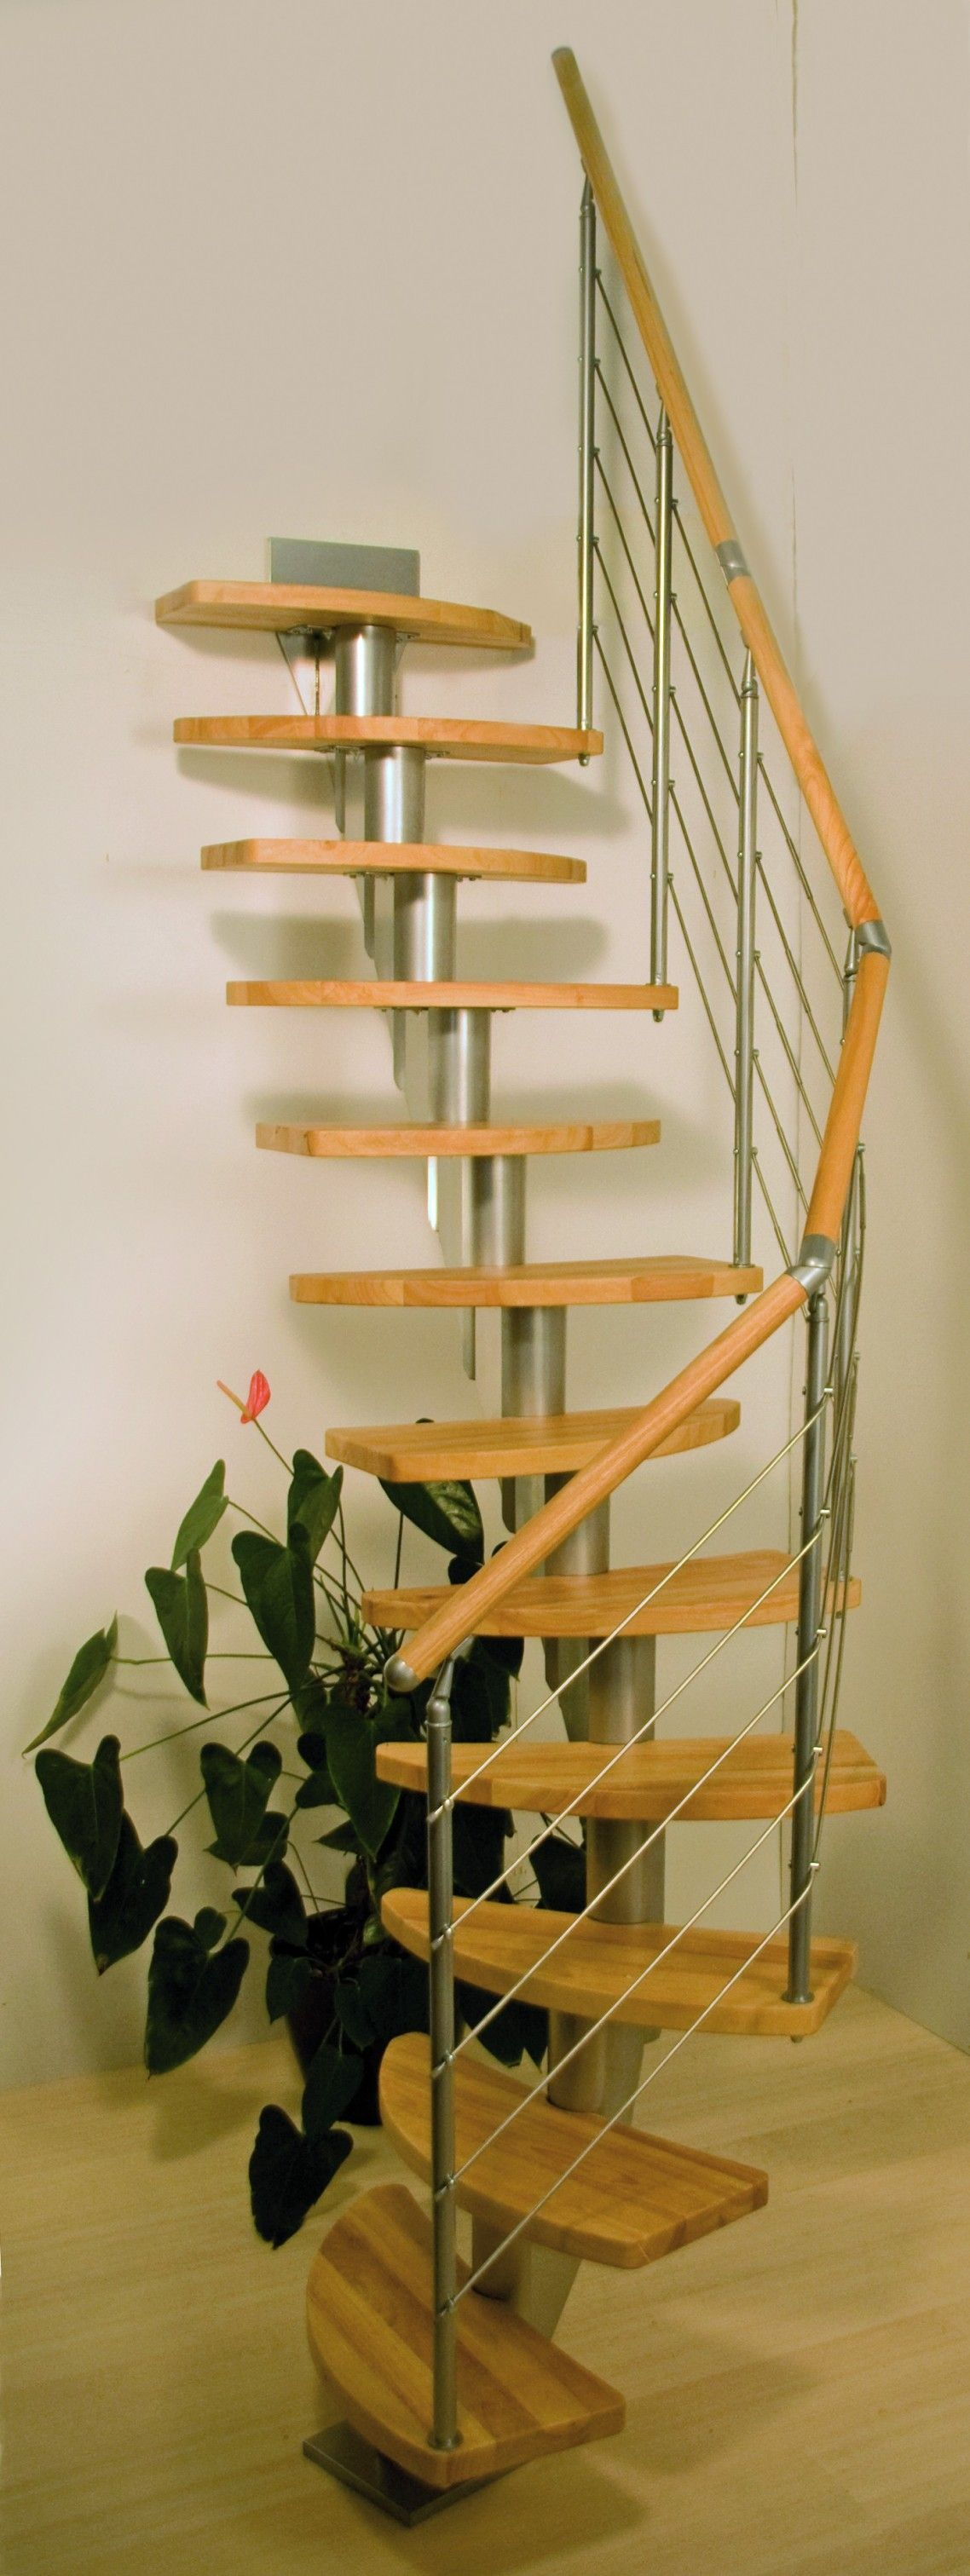 Stunning Small Space Staircase Design Ideas With Floating ...